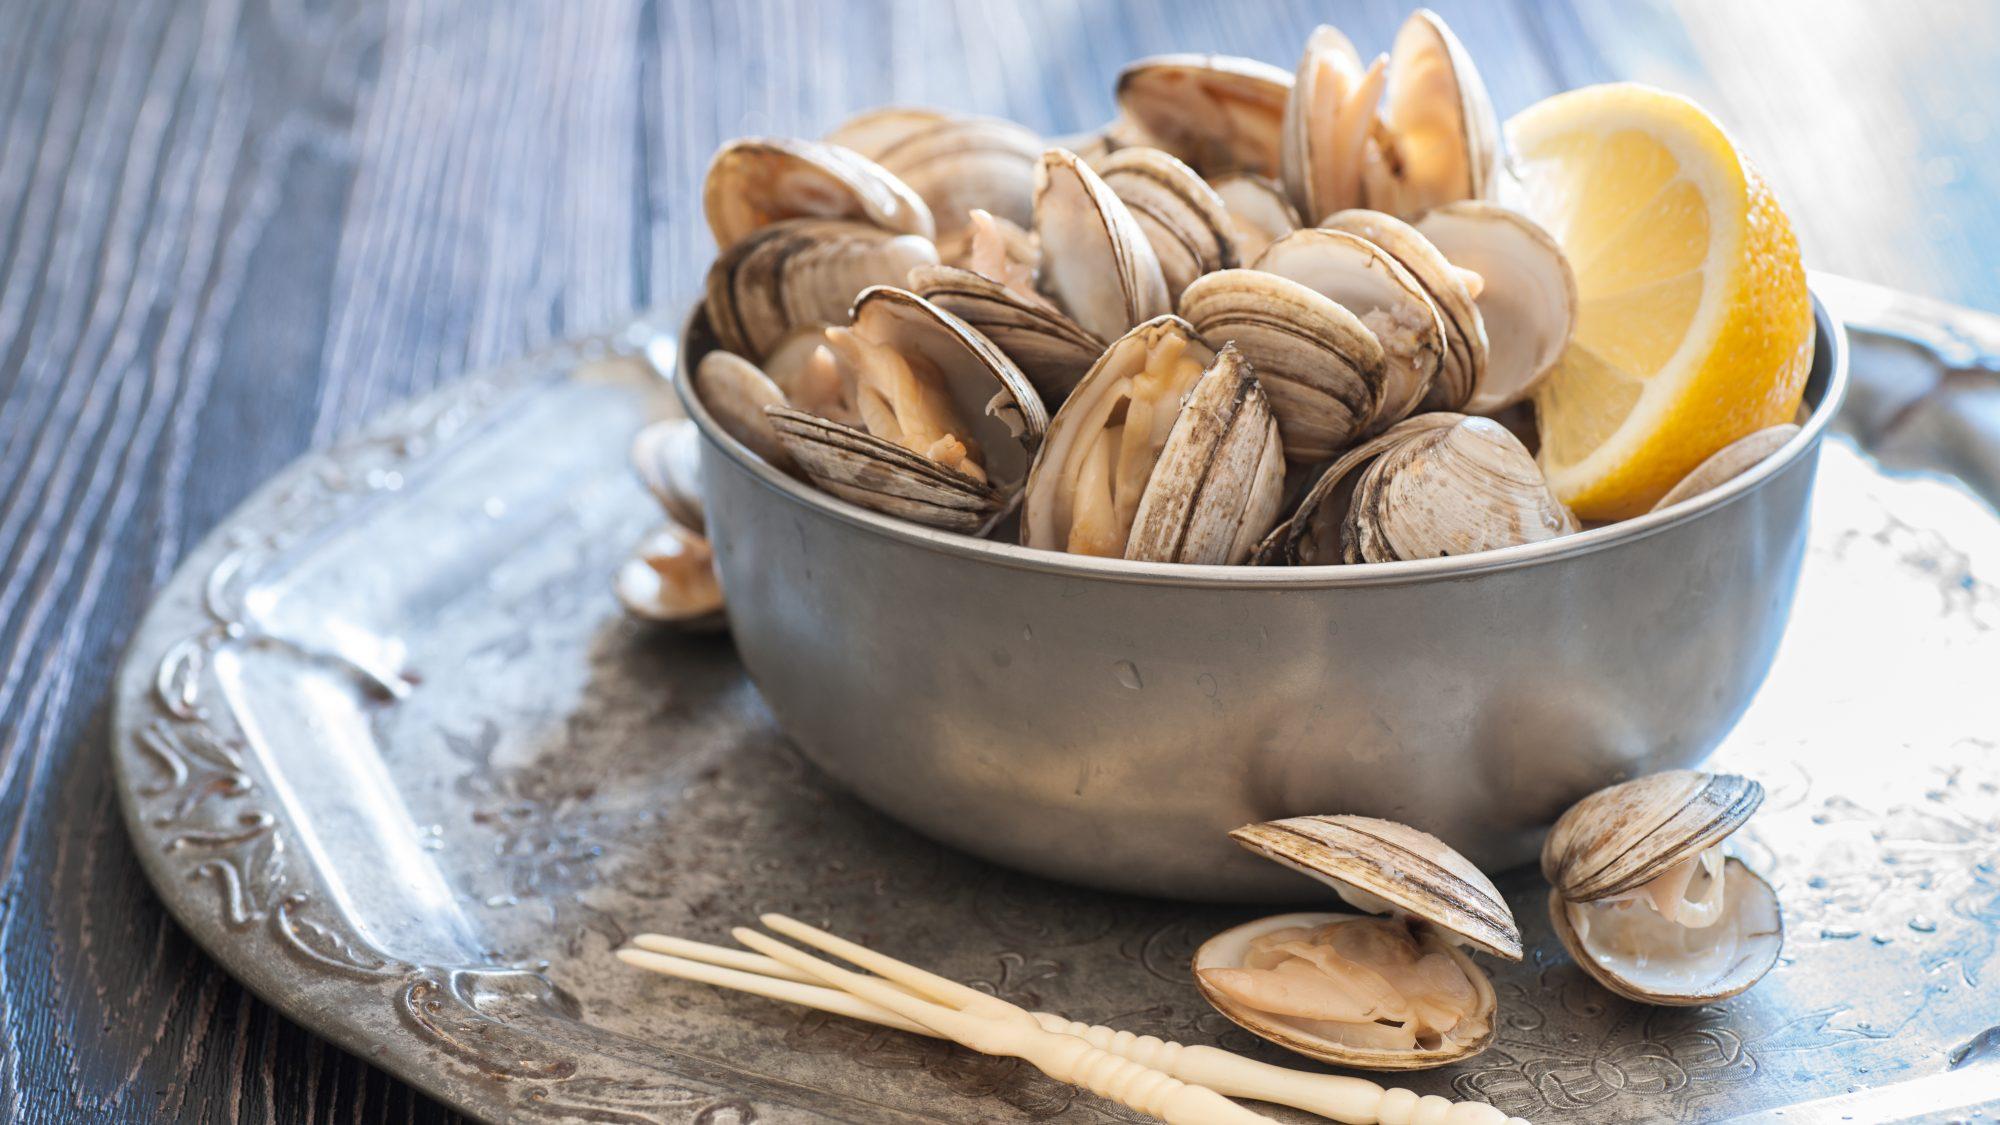 Types of clams - guide to different clam varieties